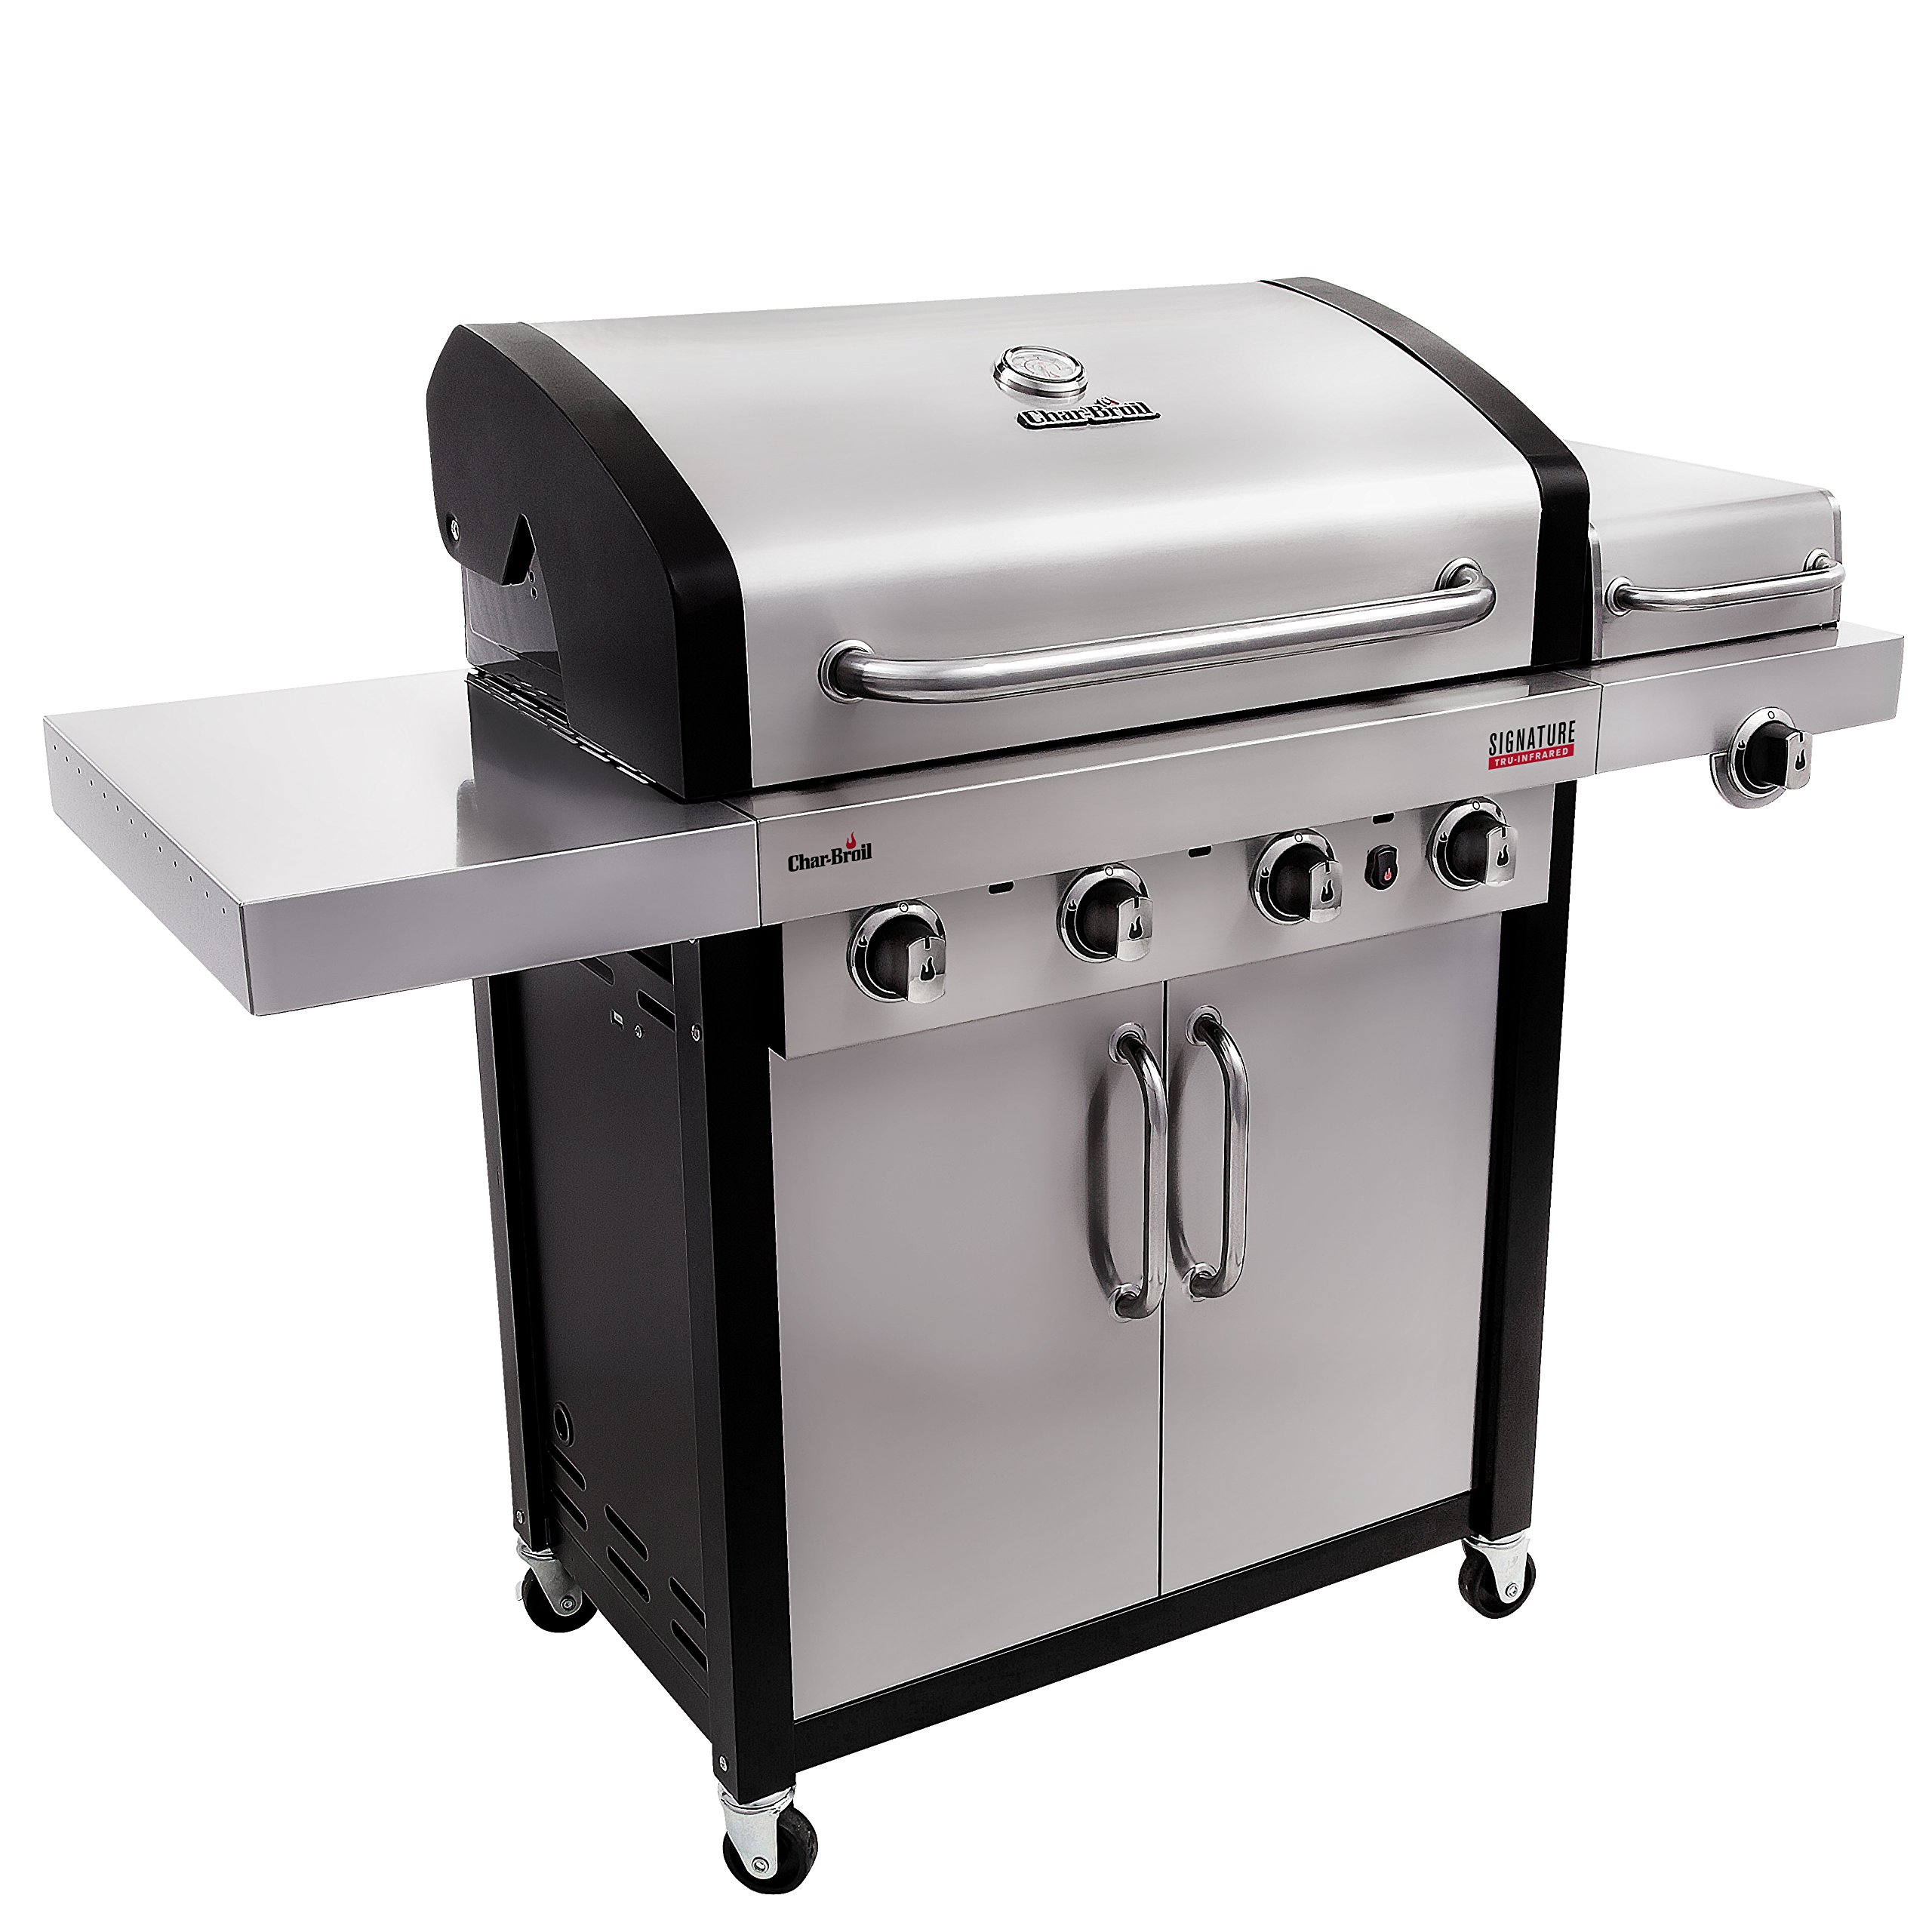 Char-Broil Signature TRU-Infrared 525 4-Burner Cabinet Liquid Propane Gas Grill by Char-Broil